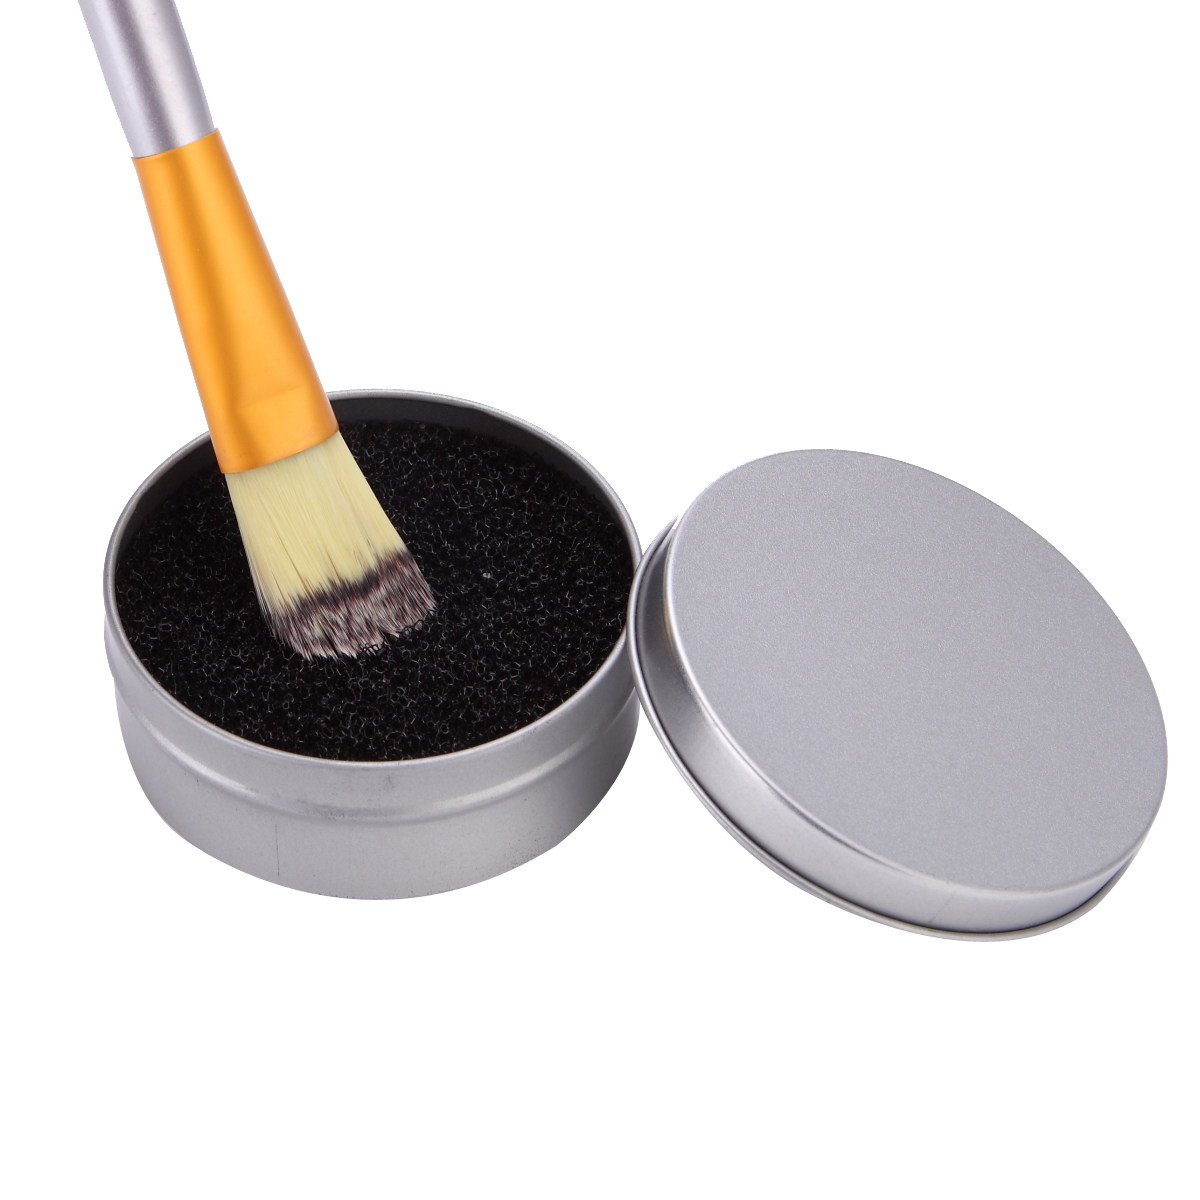 Round Sponge Brush Cosmetic Cleaner Iron Box Eye Lip Nose Face Makeup Brushes Blush Dust Powder Easy Cleaning Remove Clean Case easy remove planes